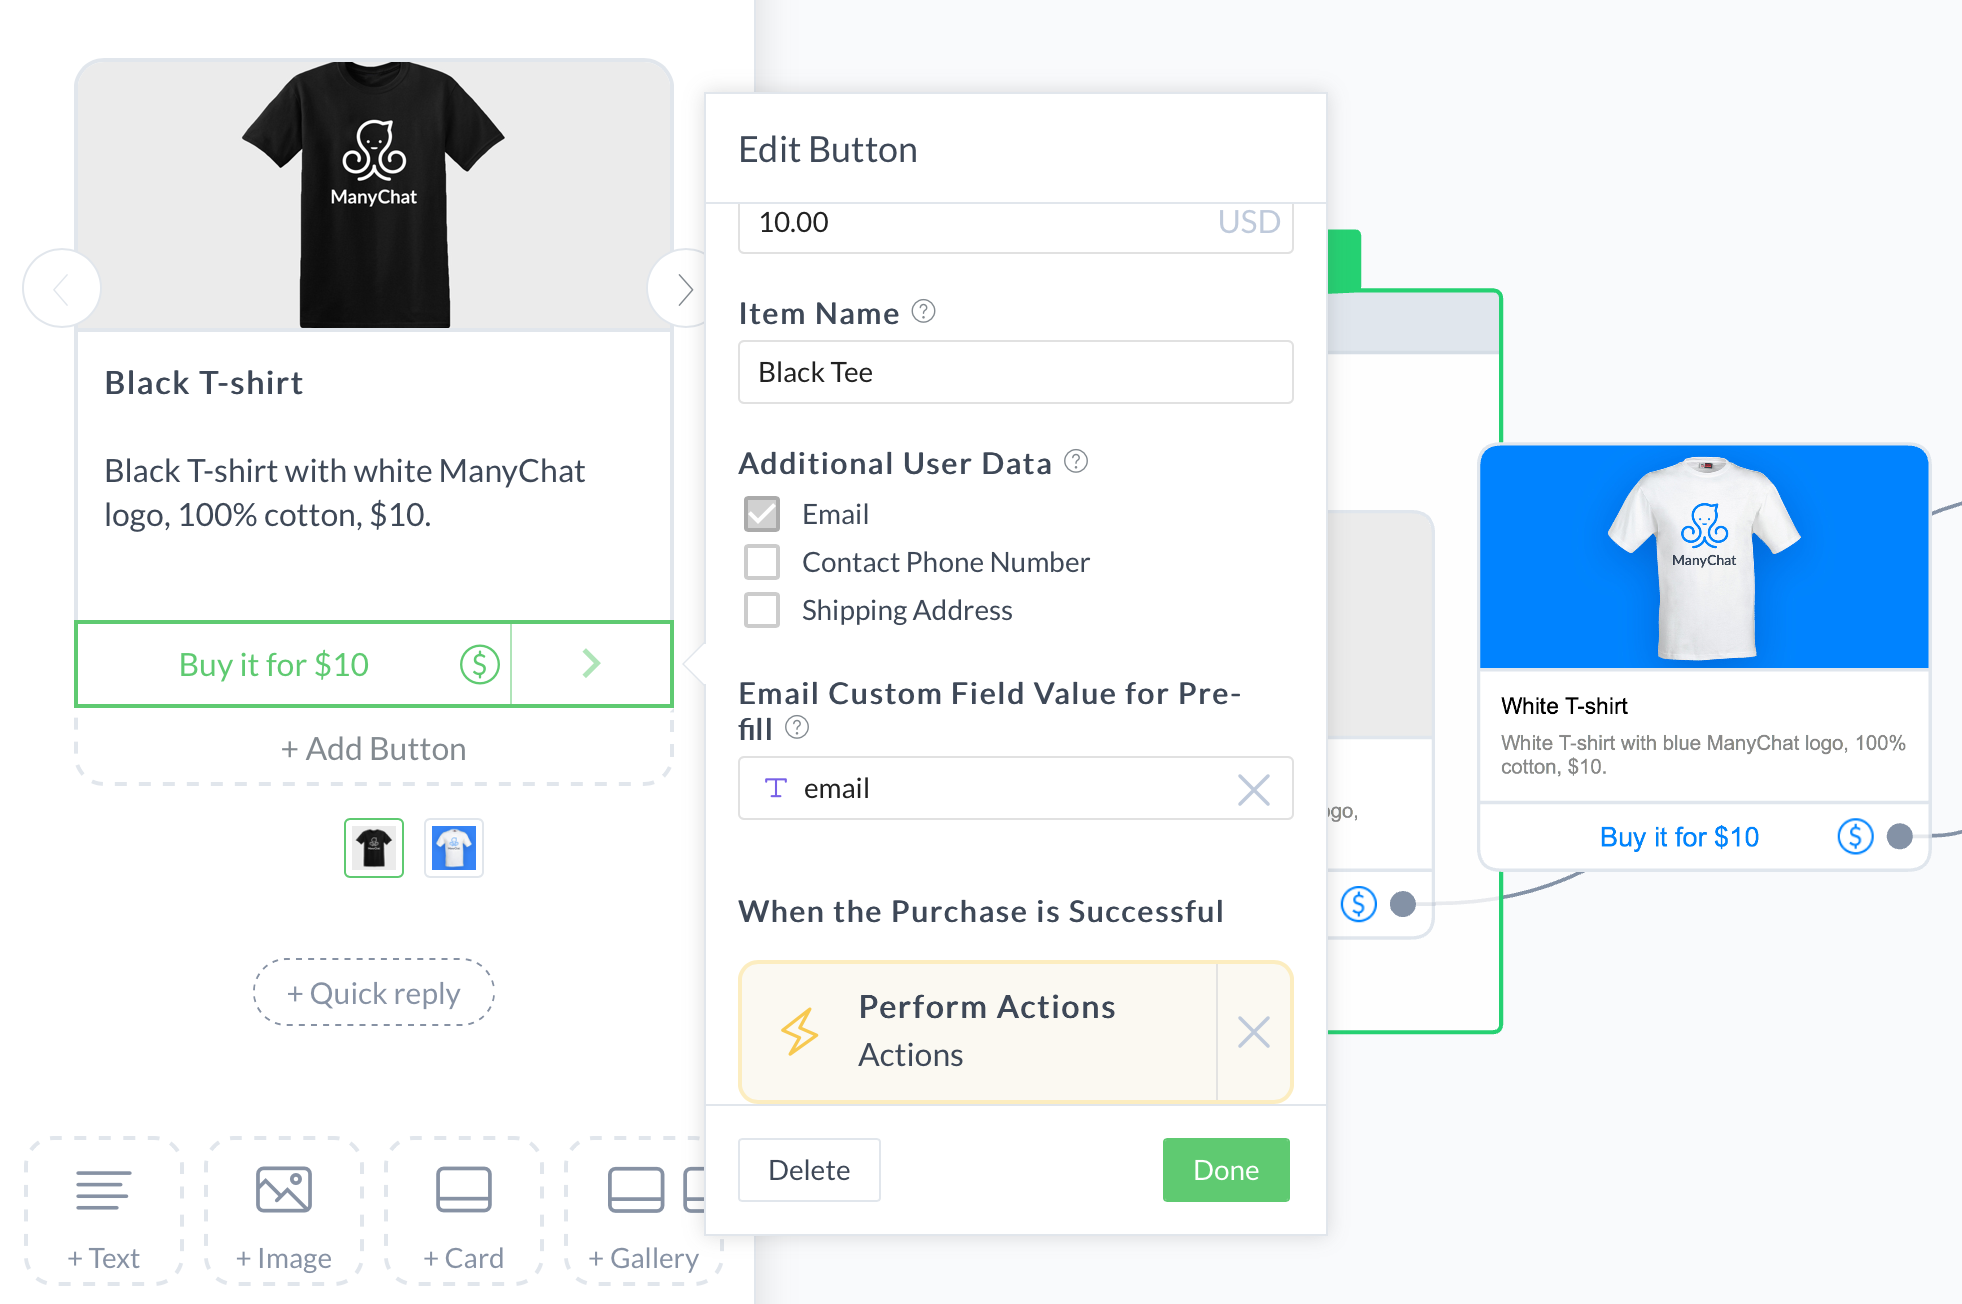 email custom fields dashboard for adding Facebook Messenger Payments in ManyChat